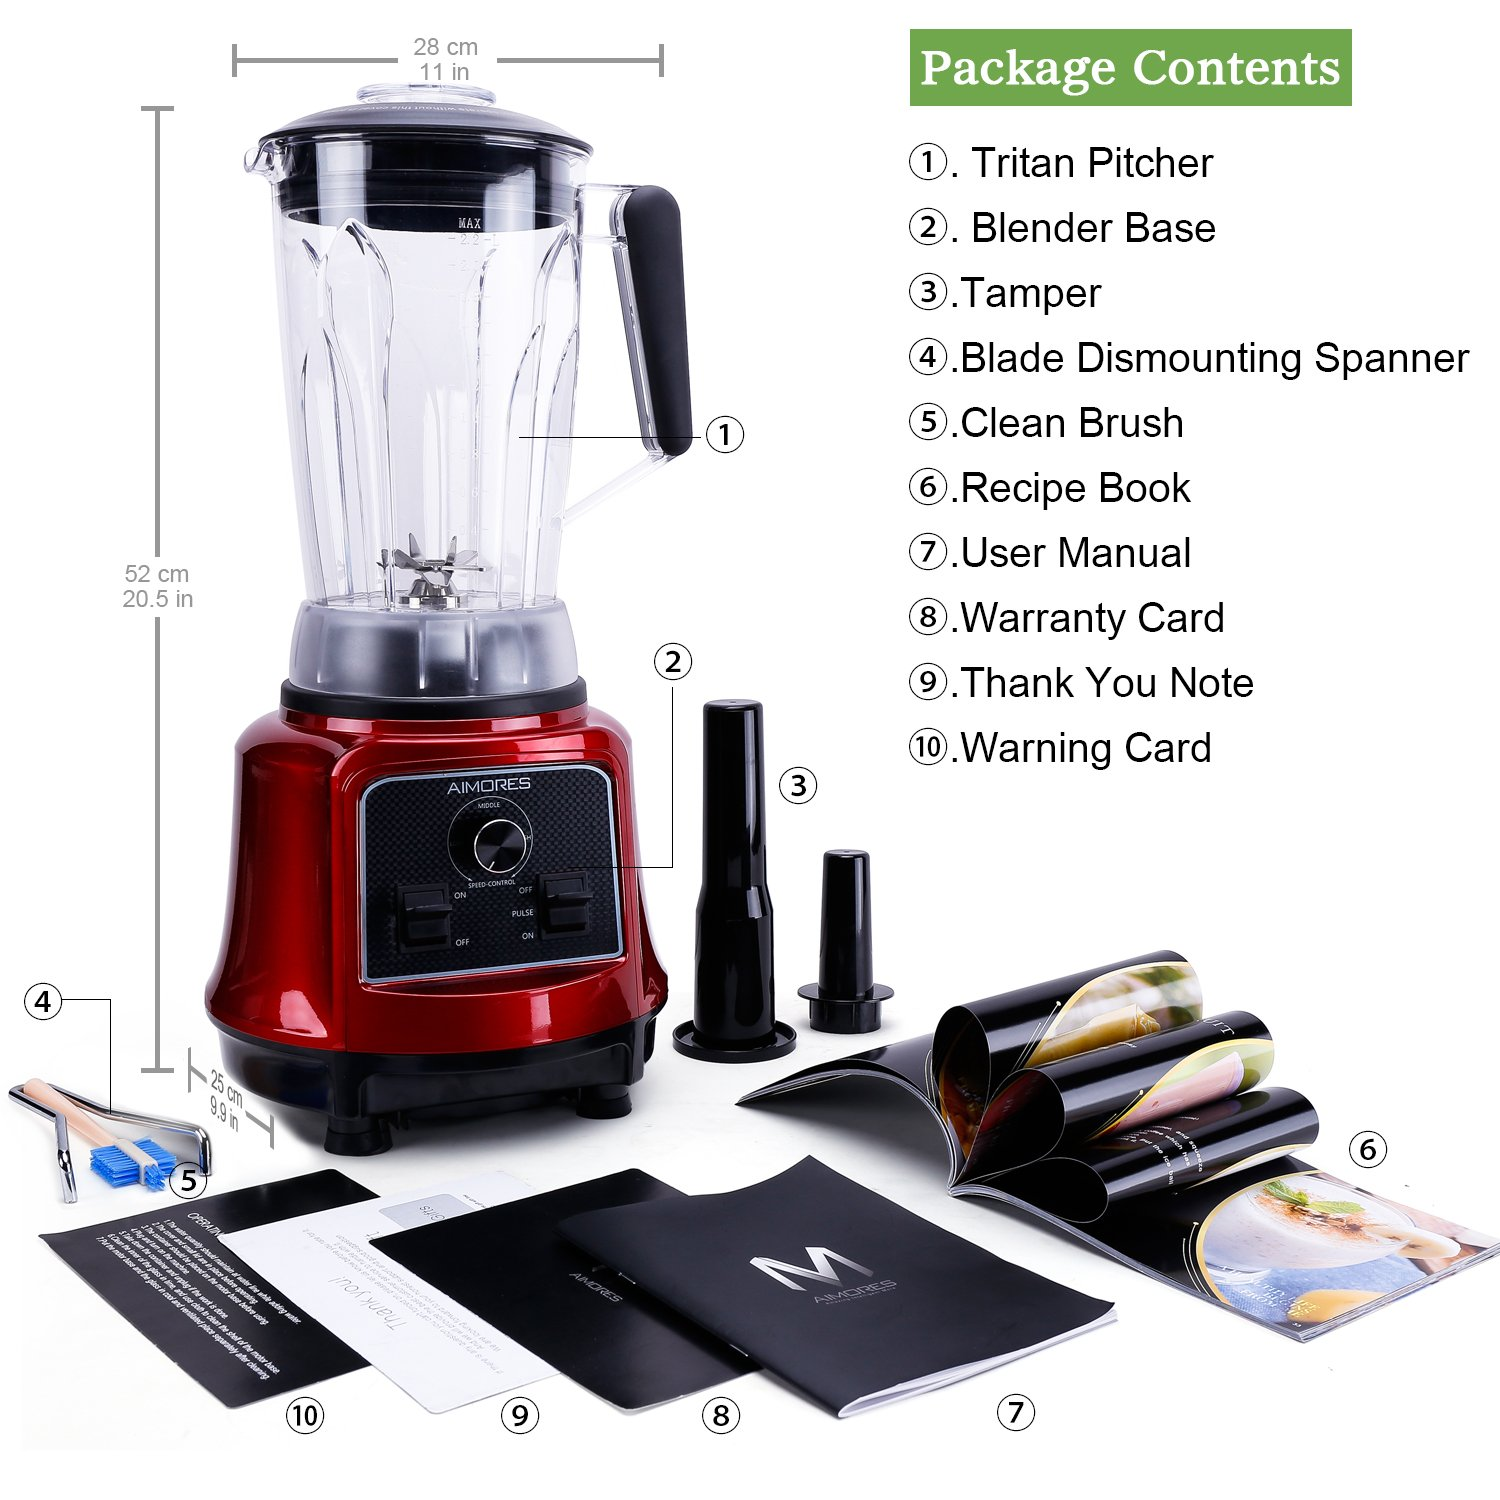 Commercial Blender Aimores for Smoothie   750z. High Speed Juicer, Ice Cream Maker   Optimized 6 Sharp Blades   Auto Clean & Simple Control   w/ Recipe & Tamper   ETL & FDA Certified (Red) by ISUN (Image #5)